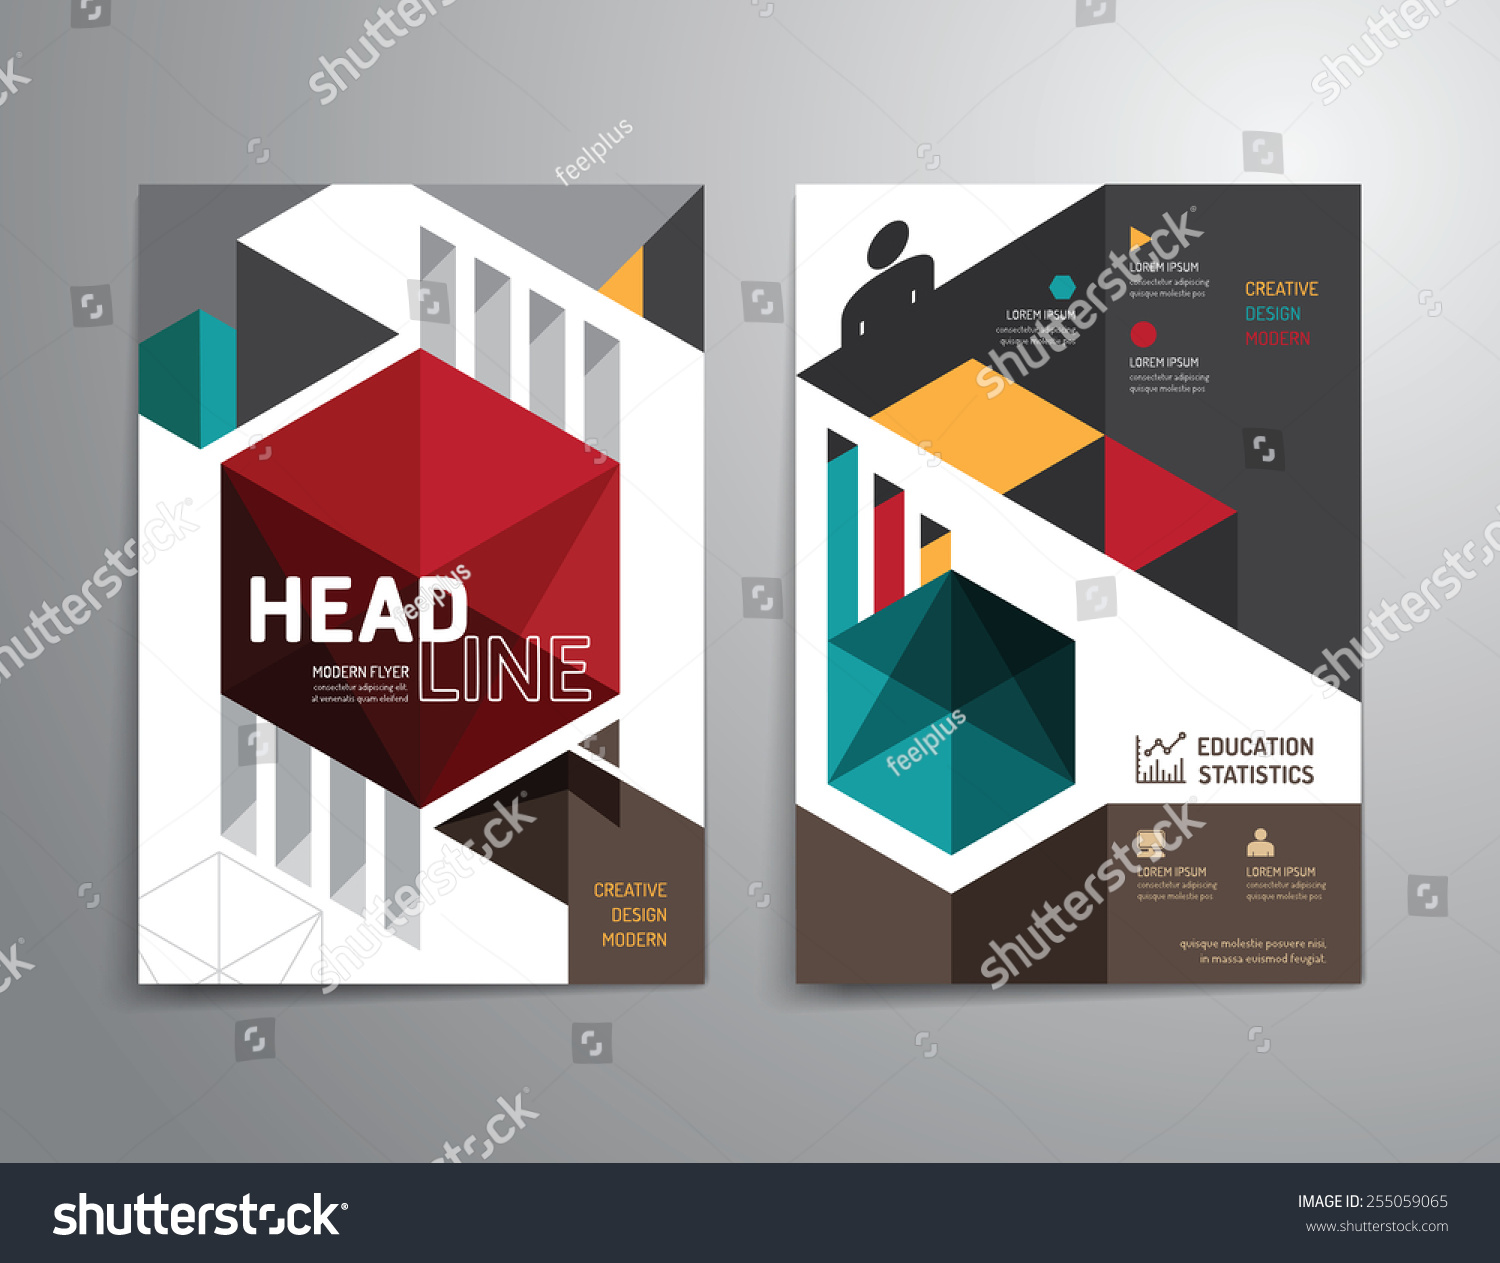 Poster design education - Vector Brochure Flyer Magazine Cover Booklet Poster Design Template Layout Education Annual Report